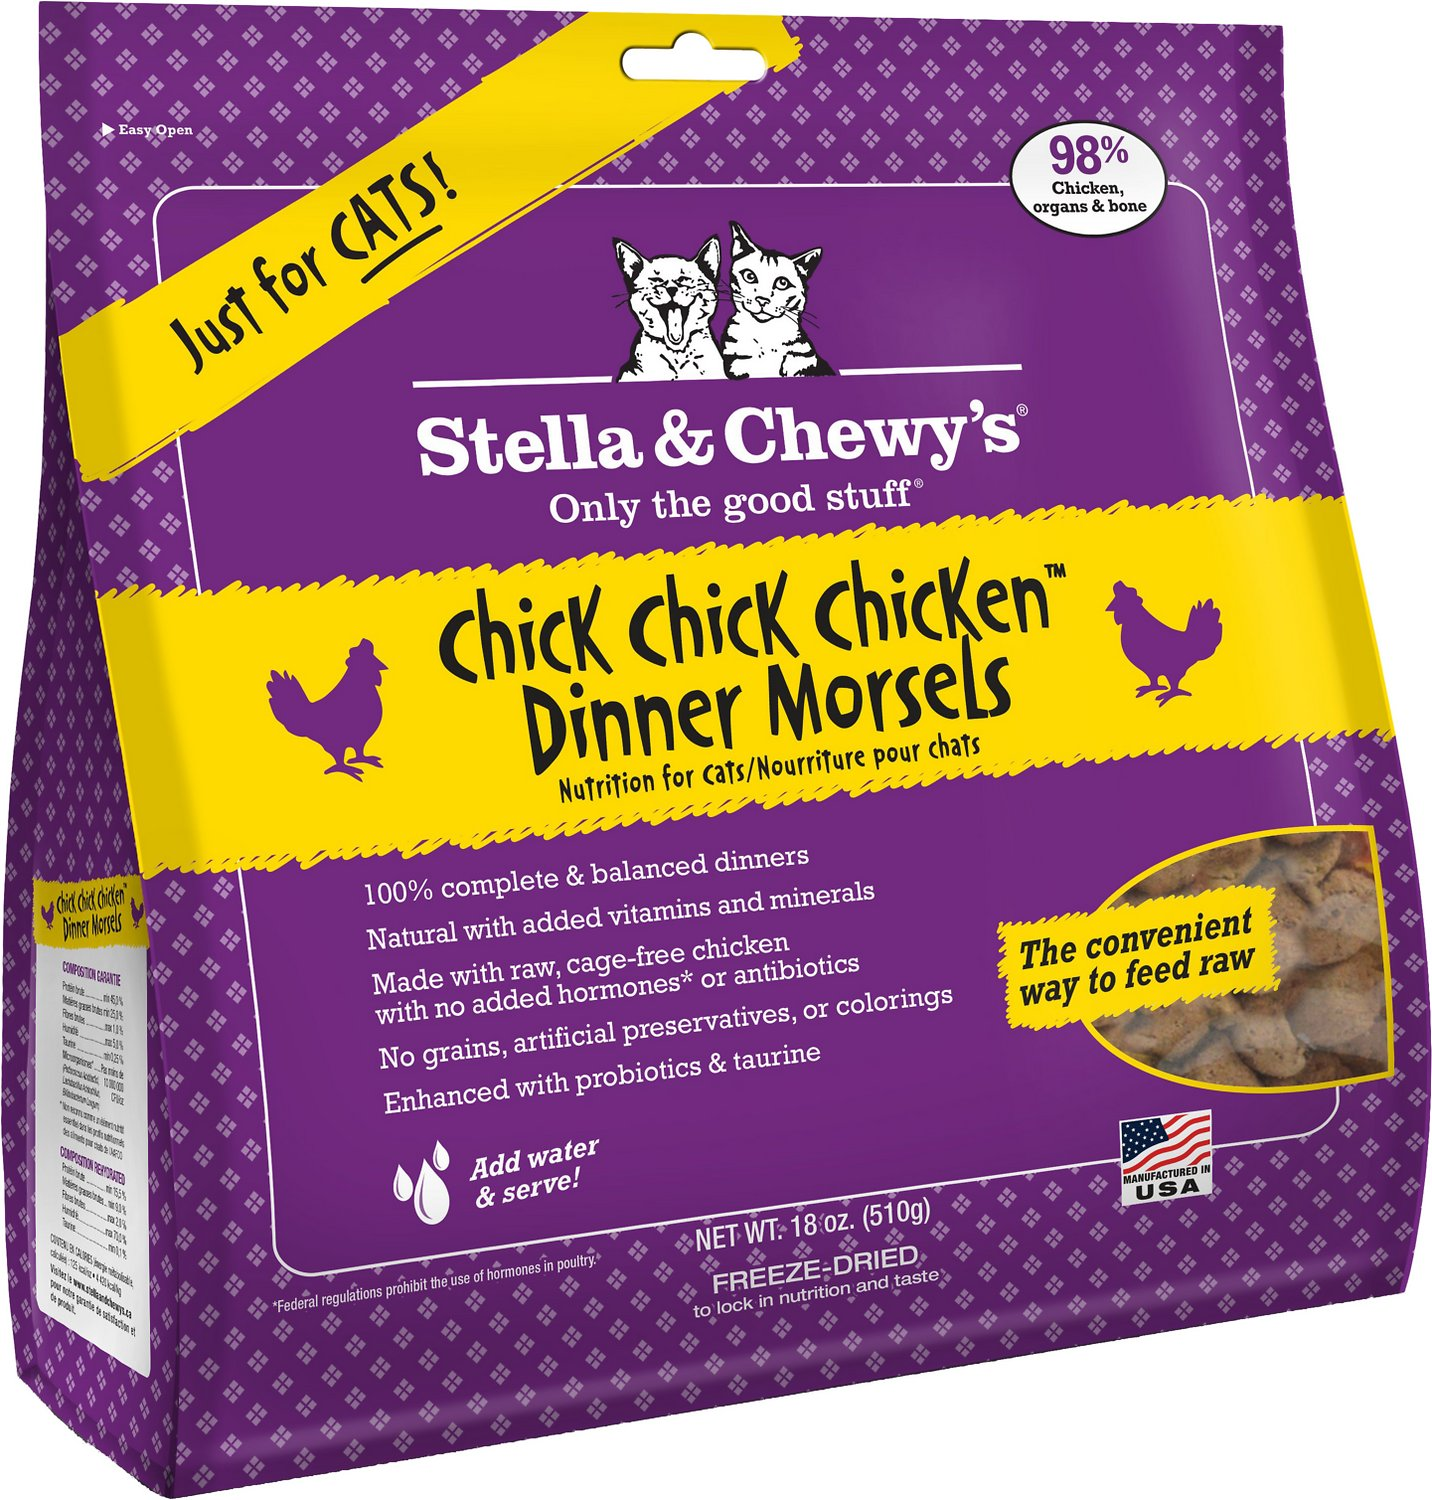 Stella & Chewy's Chick Chick Chicken Dinner Grain-Free Freeze-Dried Cat Food Image